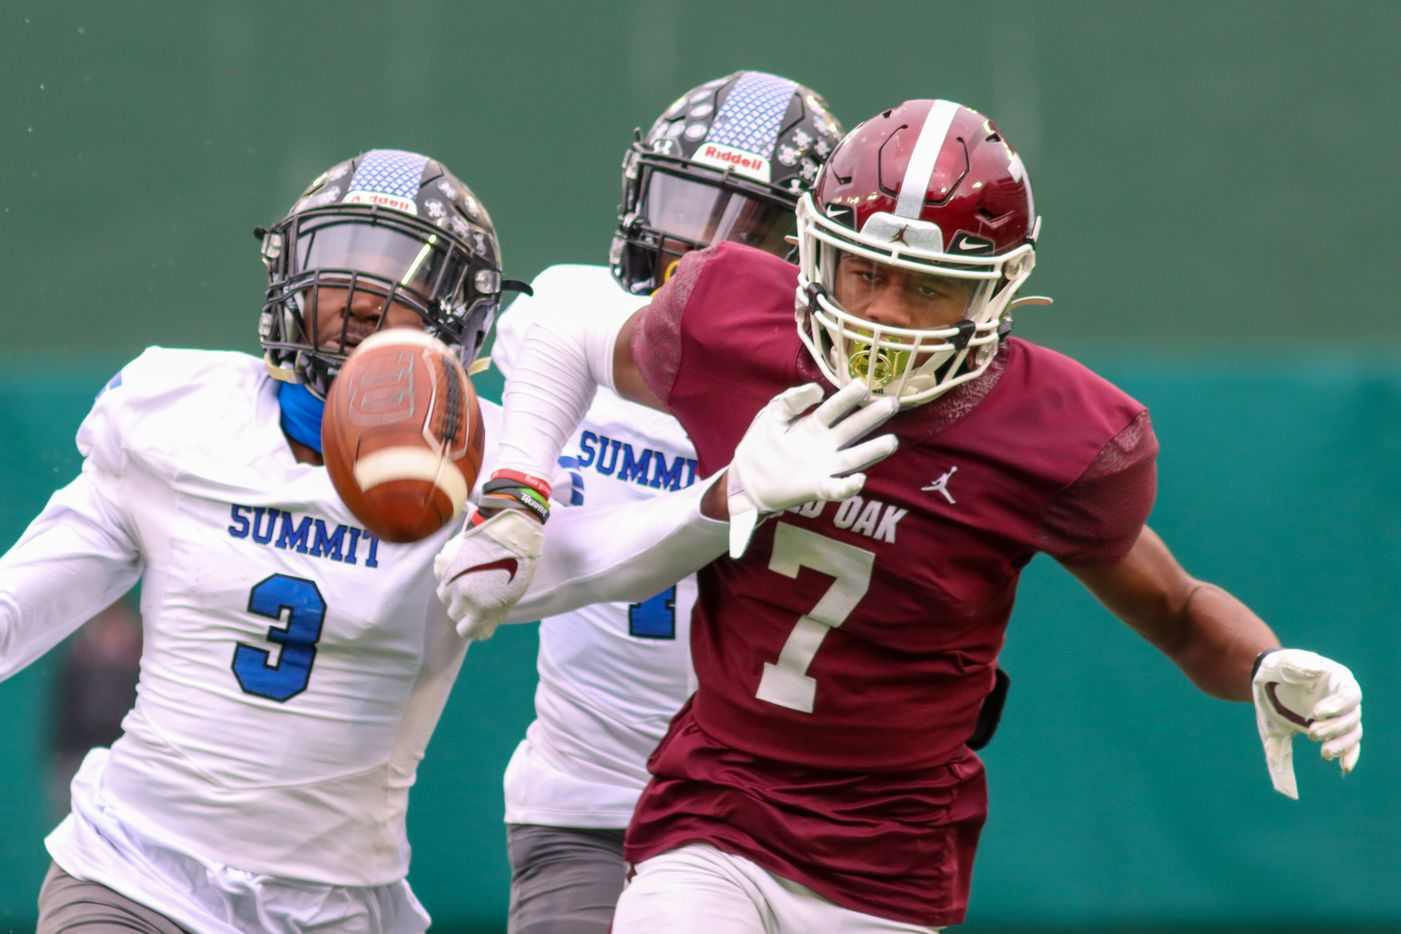 Red Oak wide receiver Raymond Gay Jr. (7) watches the ball land incomplete alongside Mansfield Summit defensive back Ahmaad Moses (3) during the first half at Globe Life Park in Arlington, Texas, Friday, Jan. 1, 2021. (Elias Valverde II / Special Contributor)